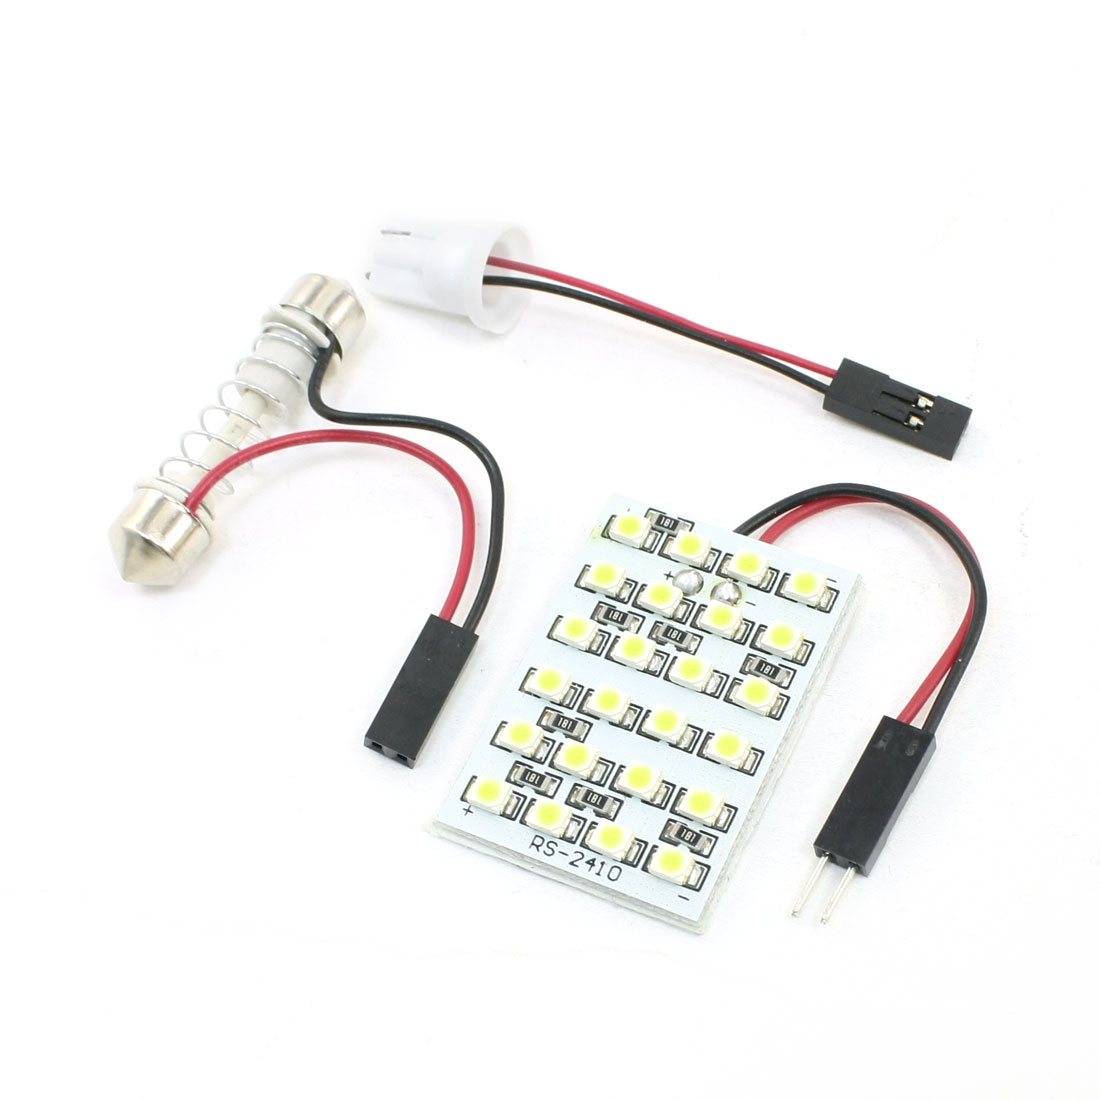 T10 W5W Festoon Adapter White 1210 24 SMD LEDs Light Dome Lamp for Car